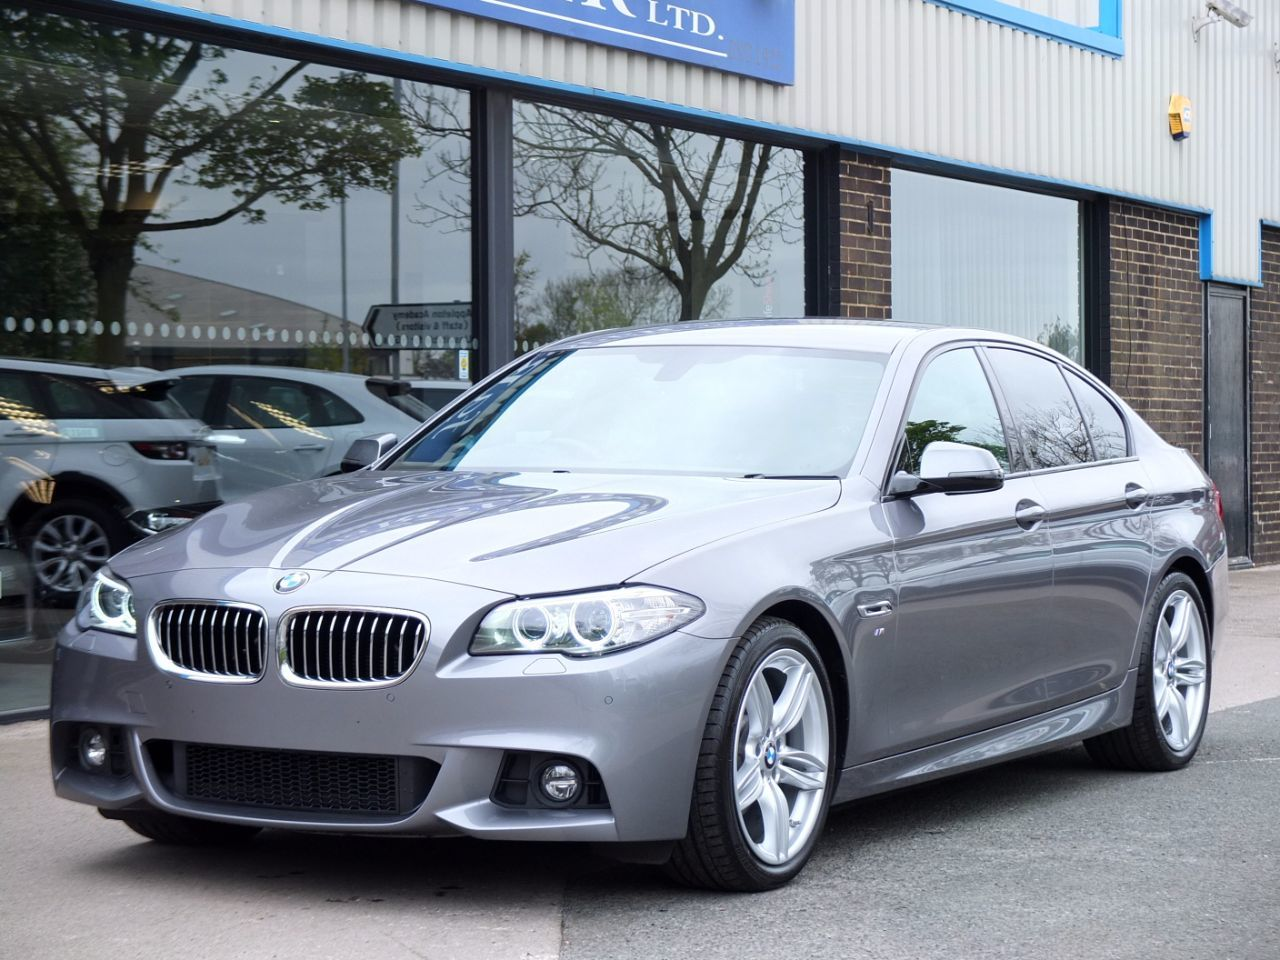 BMW 5 Series 2.0 520d [190] M Sport Plus Pack Auto Saloon Diesel Space Grey MetallicBMW 5 Series 2.0 520d [190] M Sport Plus Pack Auto Saloon Diesel Space Grey Metallic at fa Roper Ltd Bradford